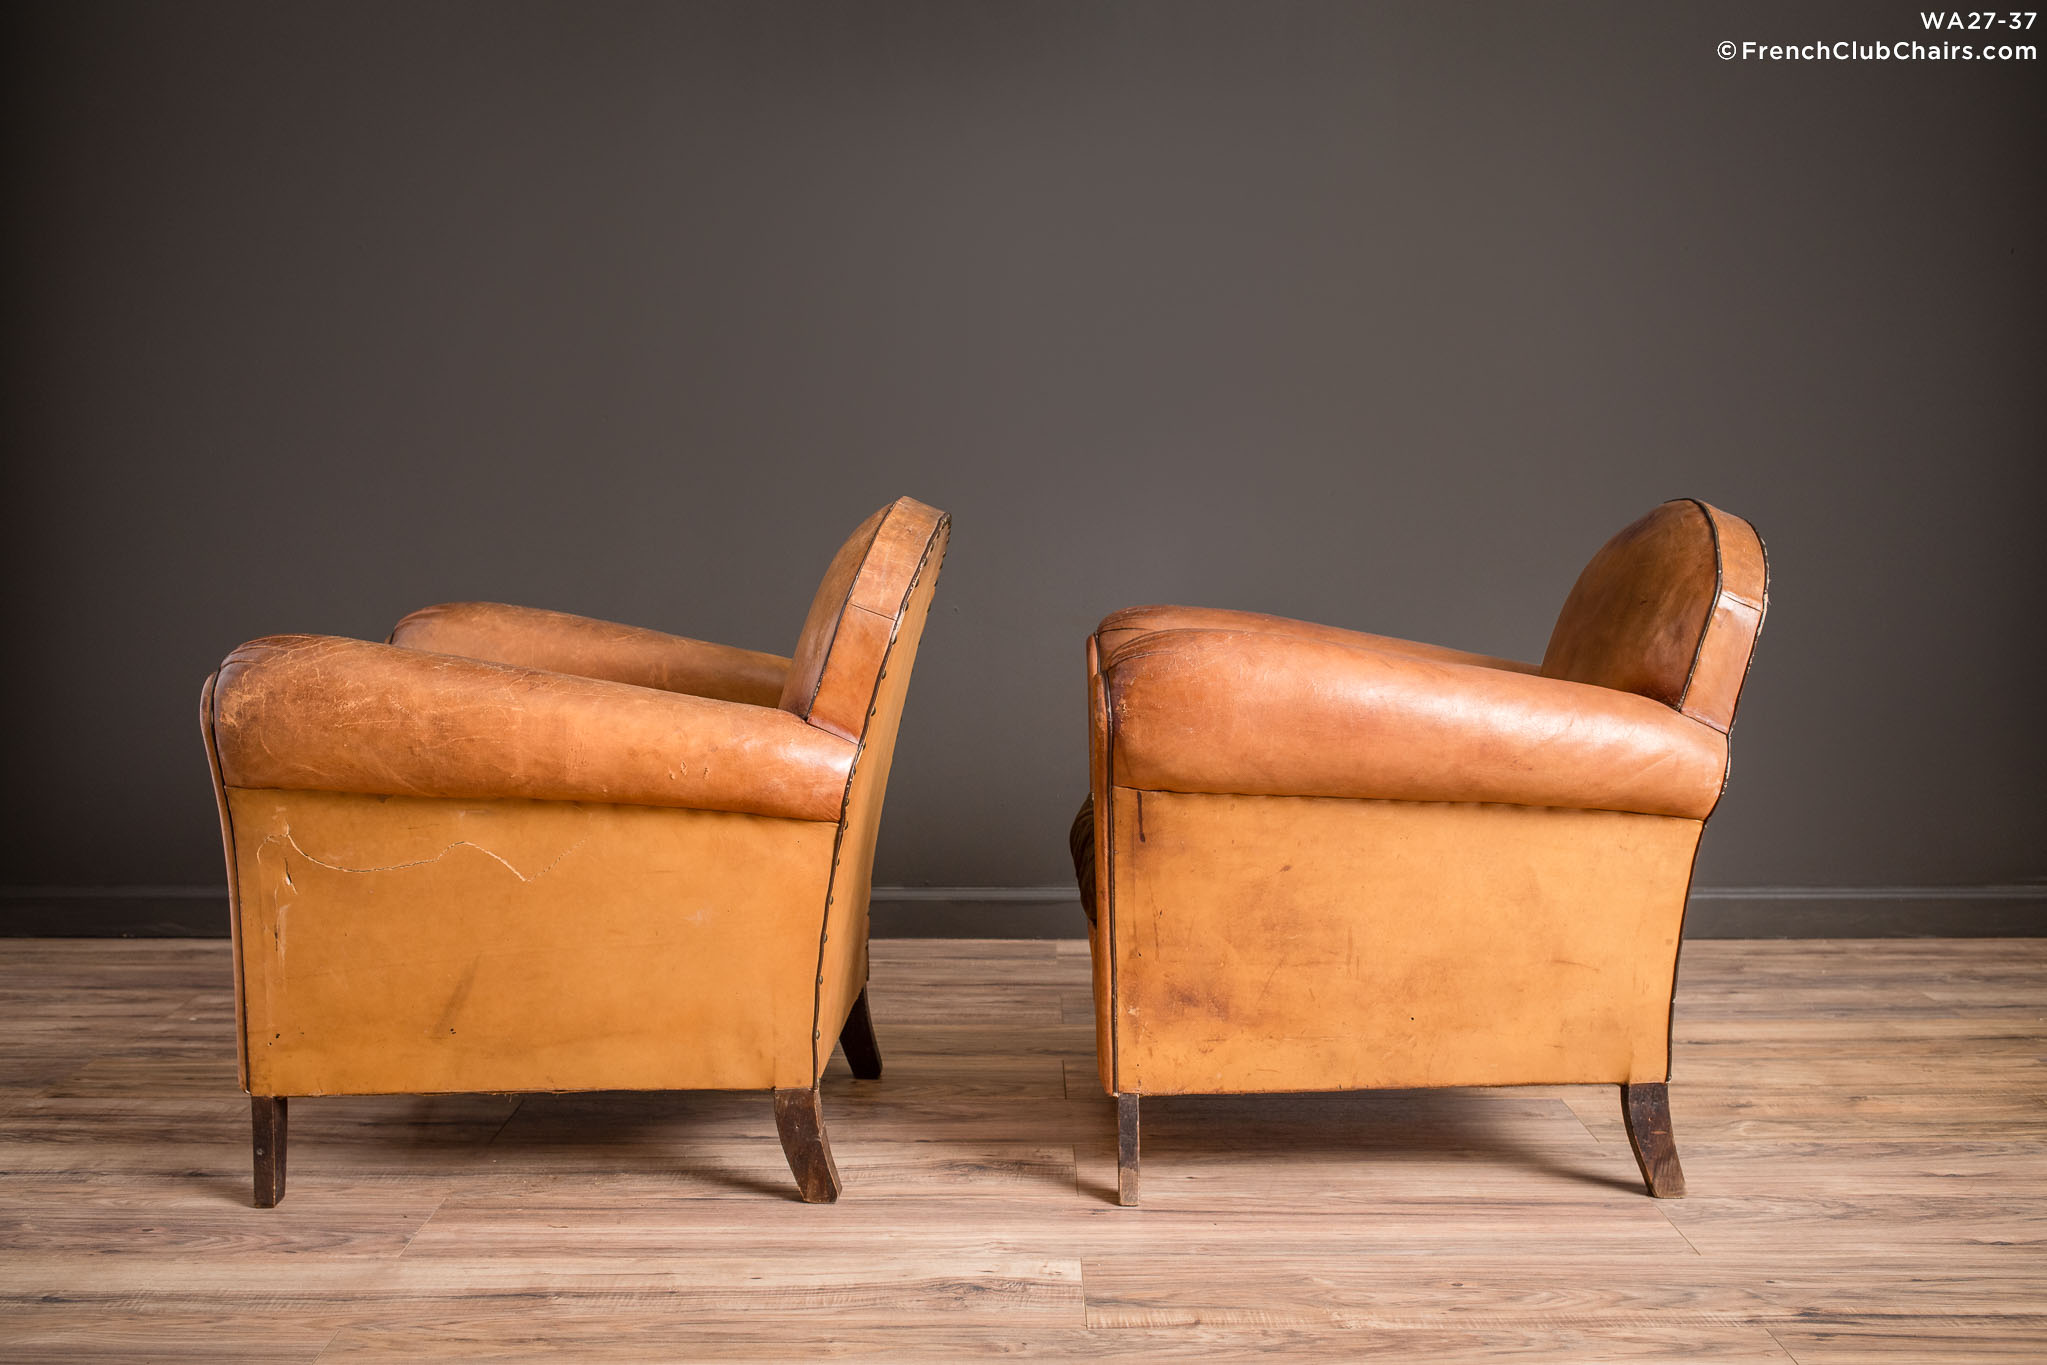 WA_27-37_Petite_Cinema_Etretat_Pair_R_4LT-v01-williams-antiks-leather-french-club-chair-wa_fcccom